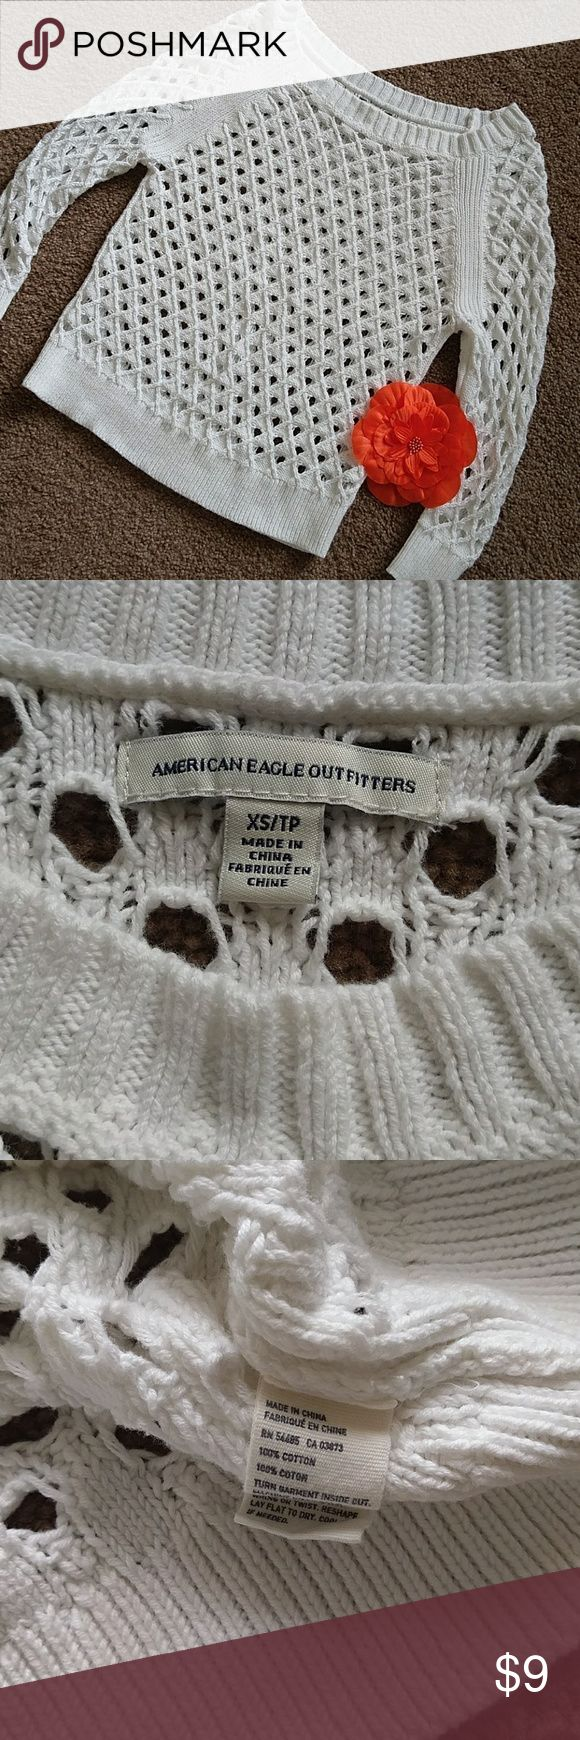 AMERICAN EAGLE WHITE OPEN WEAVE 3/4 SLEEVE TOP White open weave pullover sweater top. 3/4 sleeves. Gently worn. Bundle with other items for discount! American Eagle Outfitters Tops